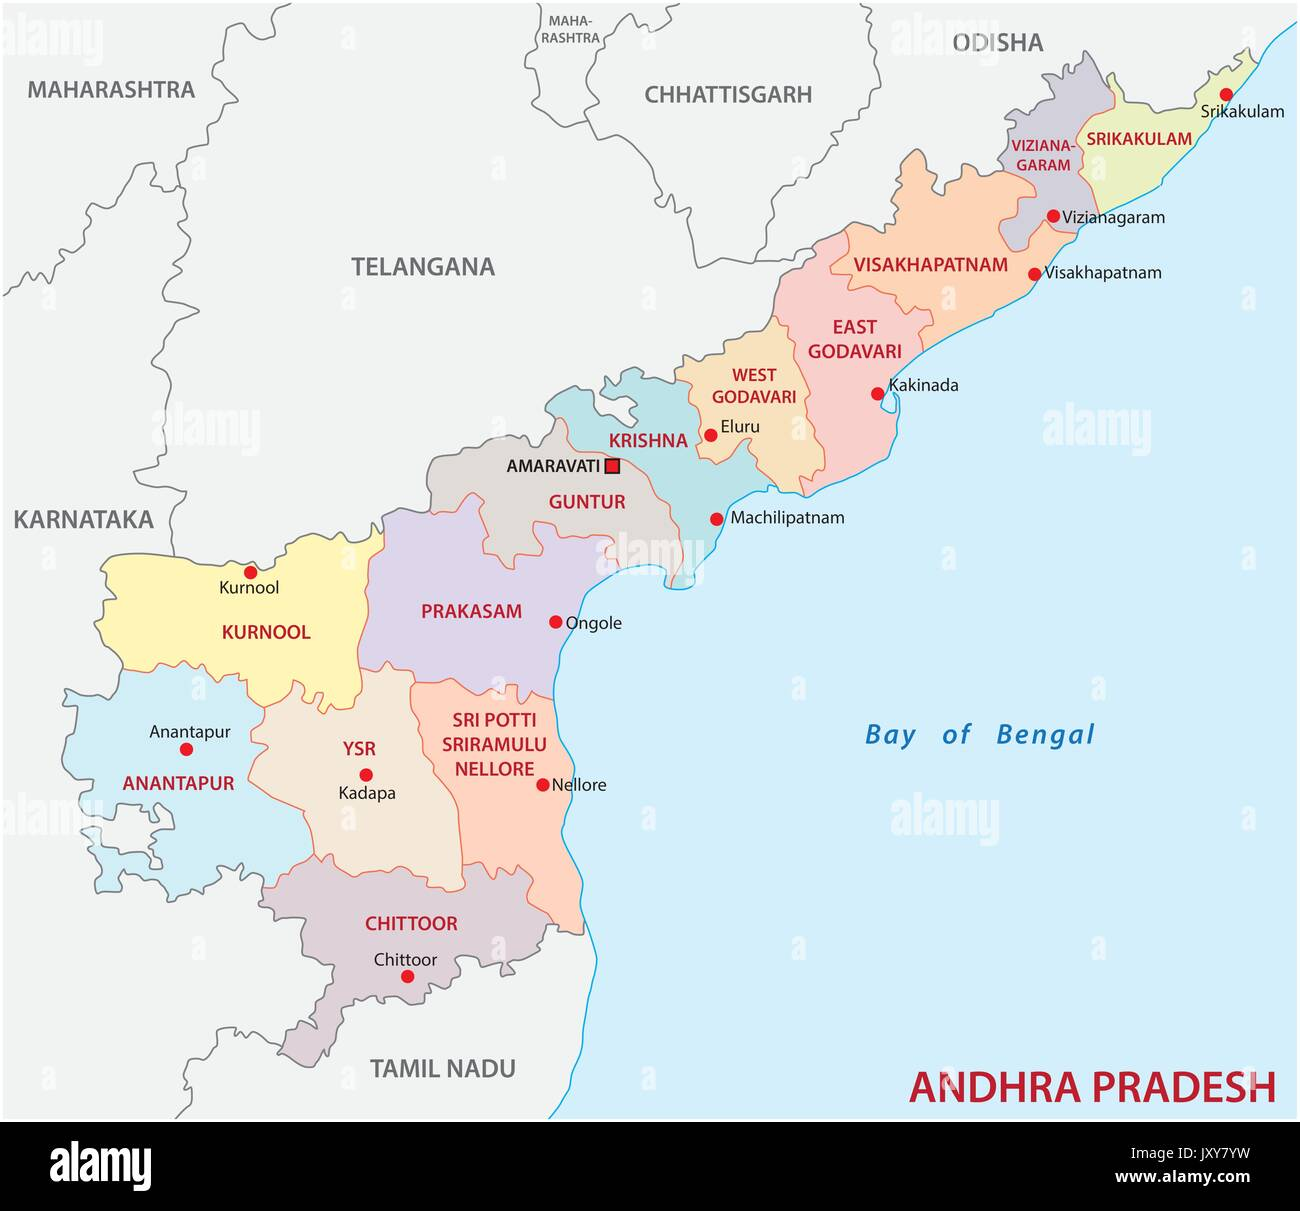 Ap Political Map Andhra Pradesh administrative and political map, India Stock